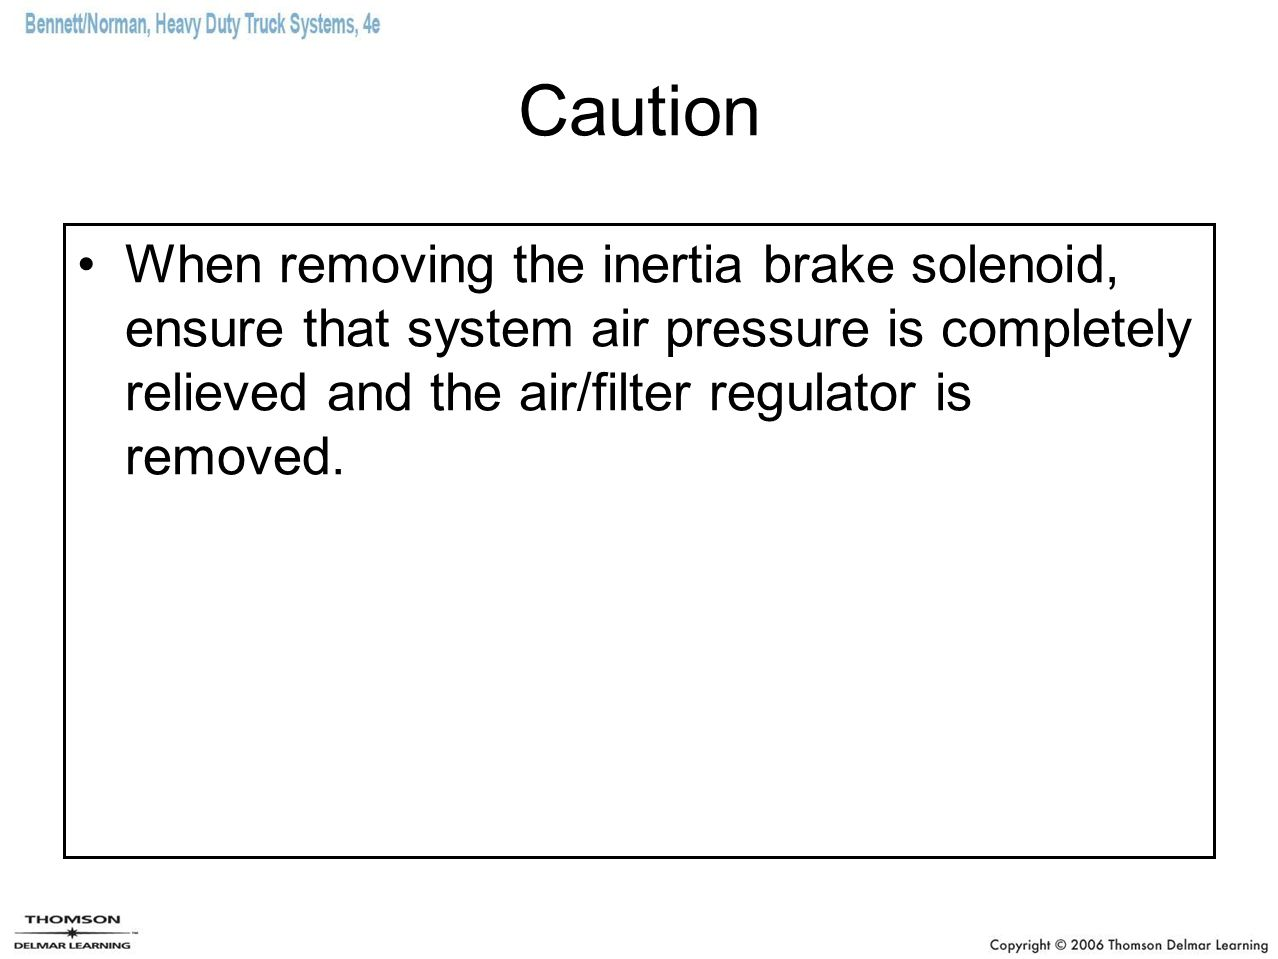 Caution When removing the inertia brake solenoid, ensure that system air pressure is completely relieved and the air/filter regulator is removed.